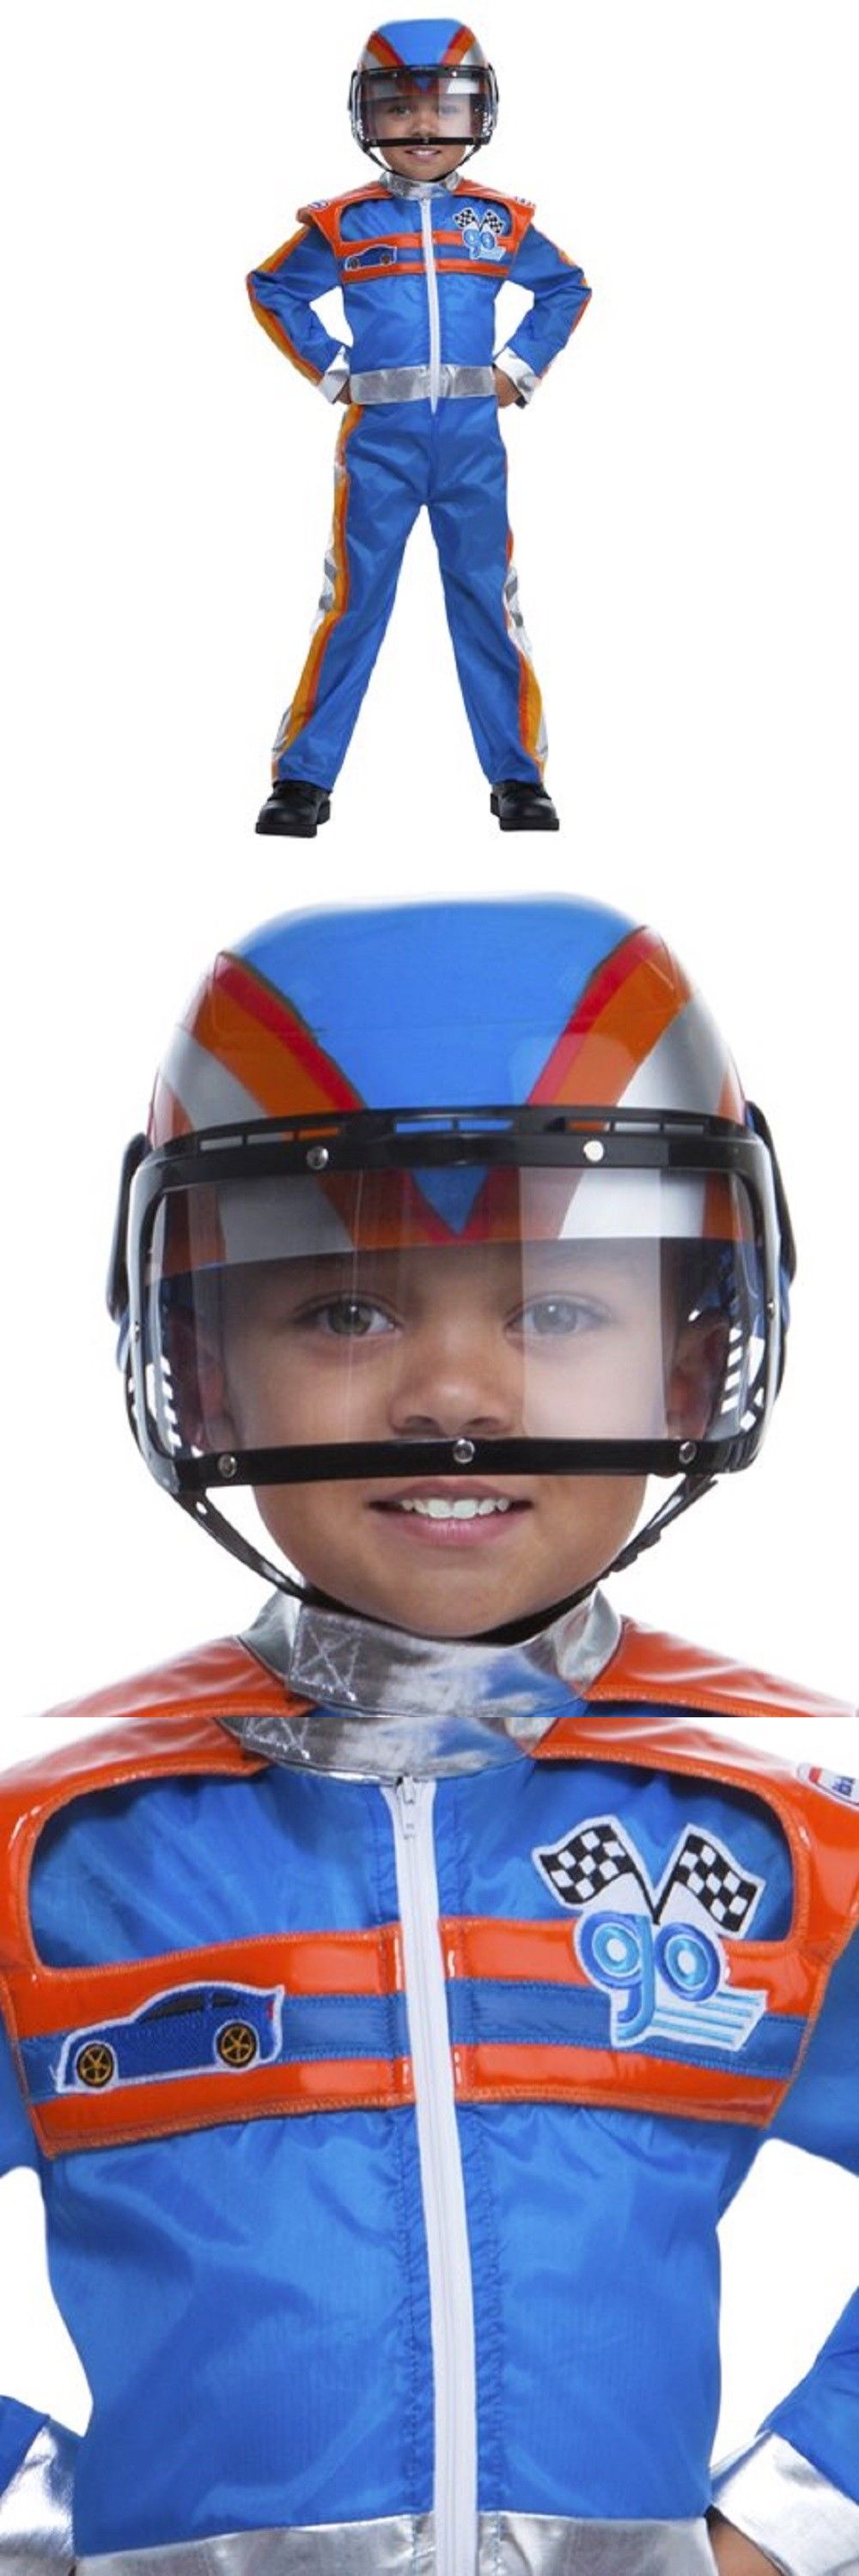 Infants and Toddlers 90635: Little Tikes Racecar Driver Outfit